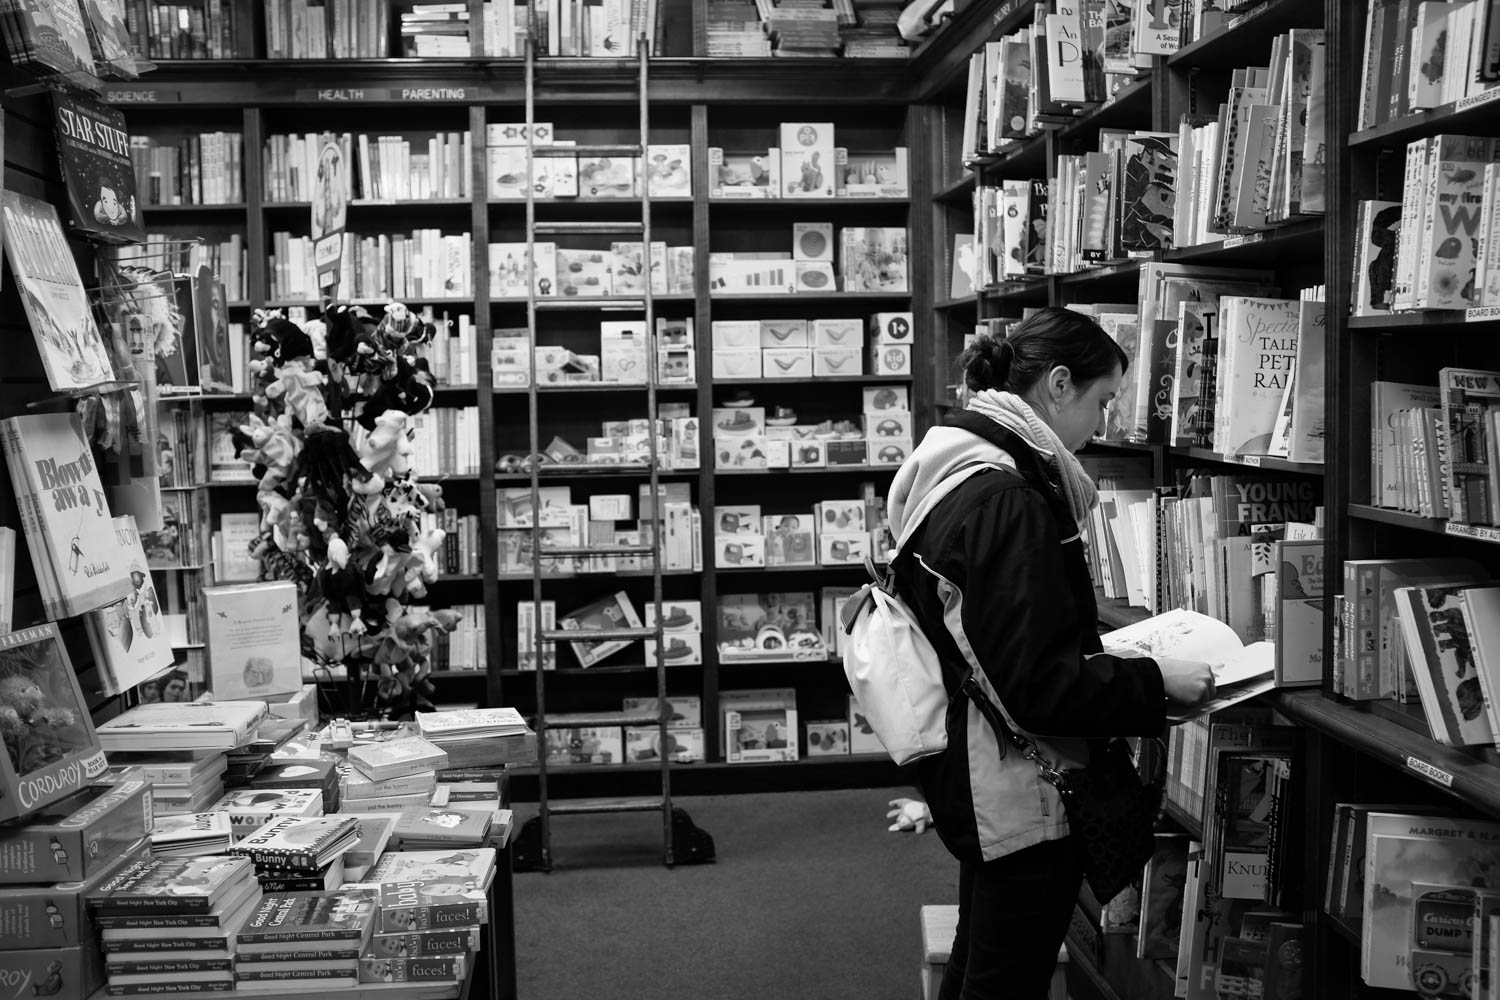 A girl flipping through the pages of a book at a local bookstore in Manhattan.